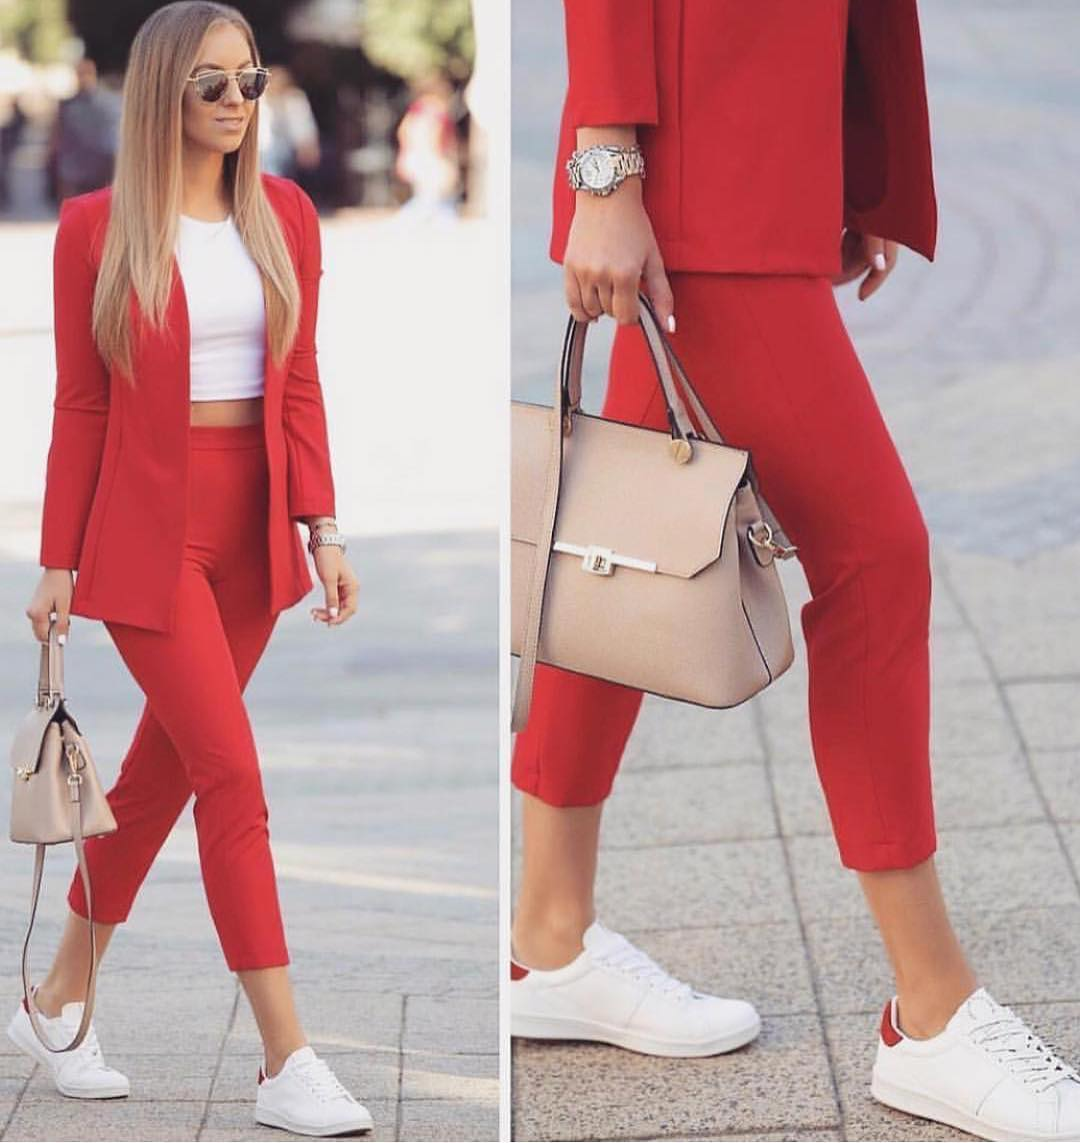 110 Perfect Summer Street Style for Women Inspired images 1